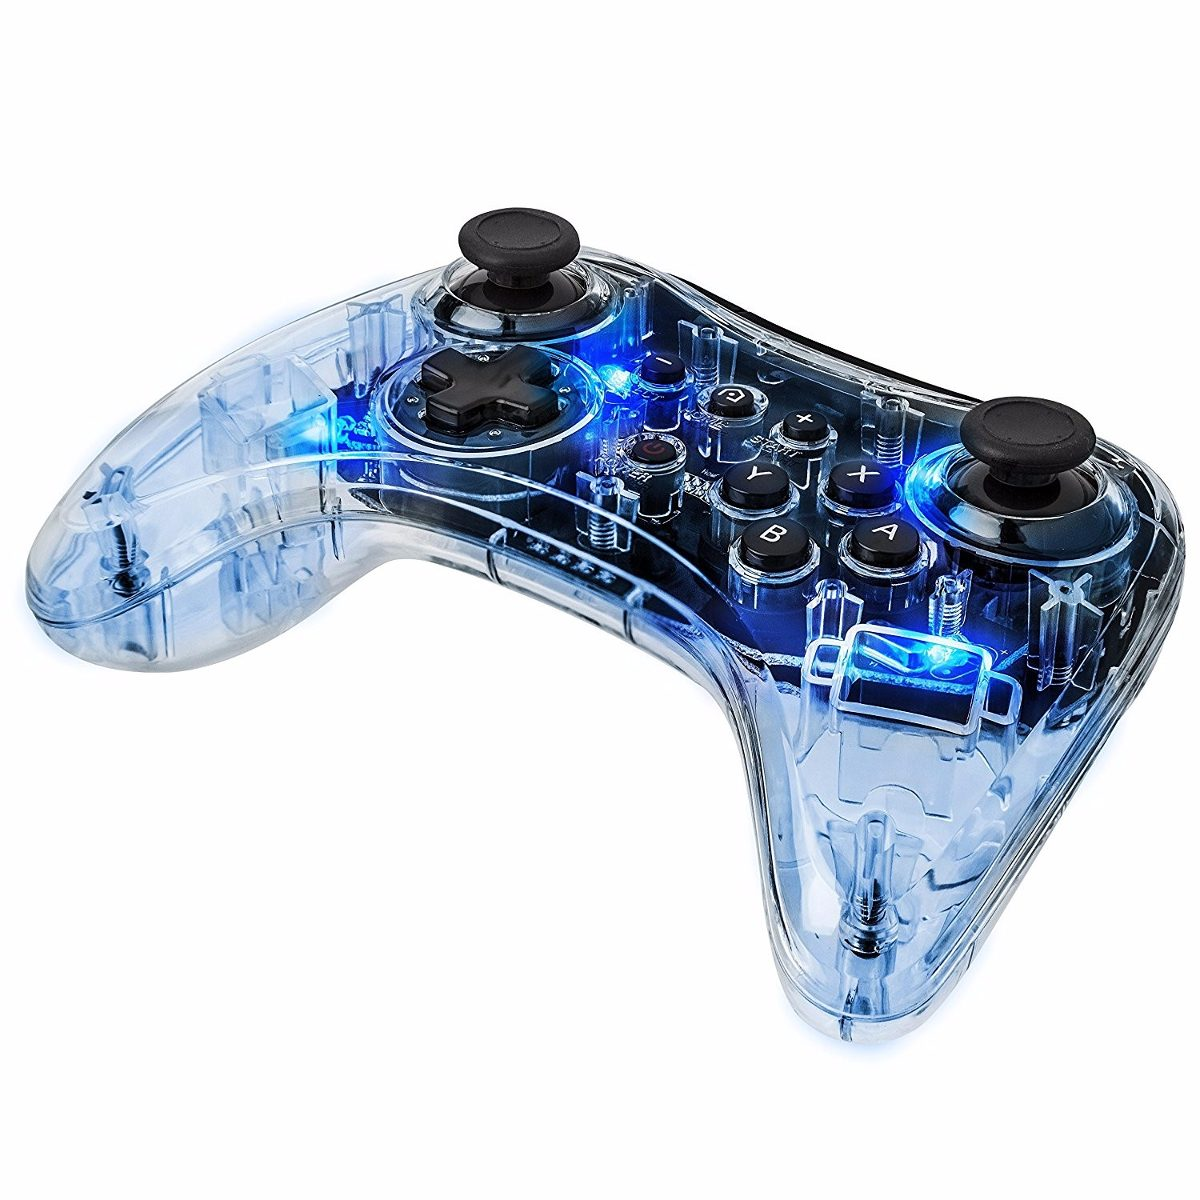 Xboxo X besides Control Wii Pro D Nq Np Mlm F besides Maxresdefault also Logo Ps Controller Juventus Turin also Sk Alienware. on xbox joystick controller